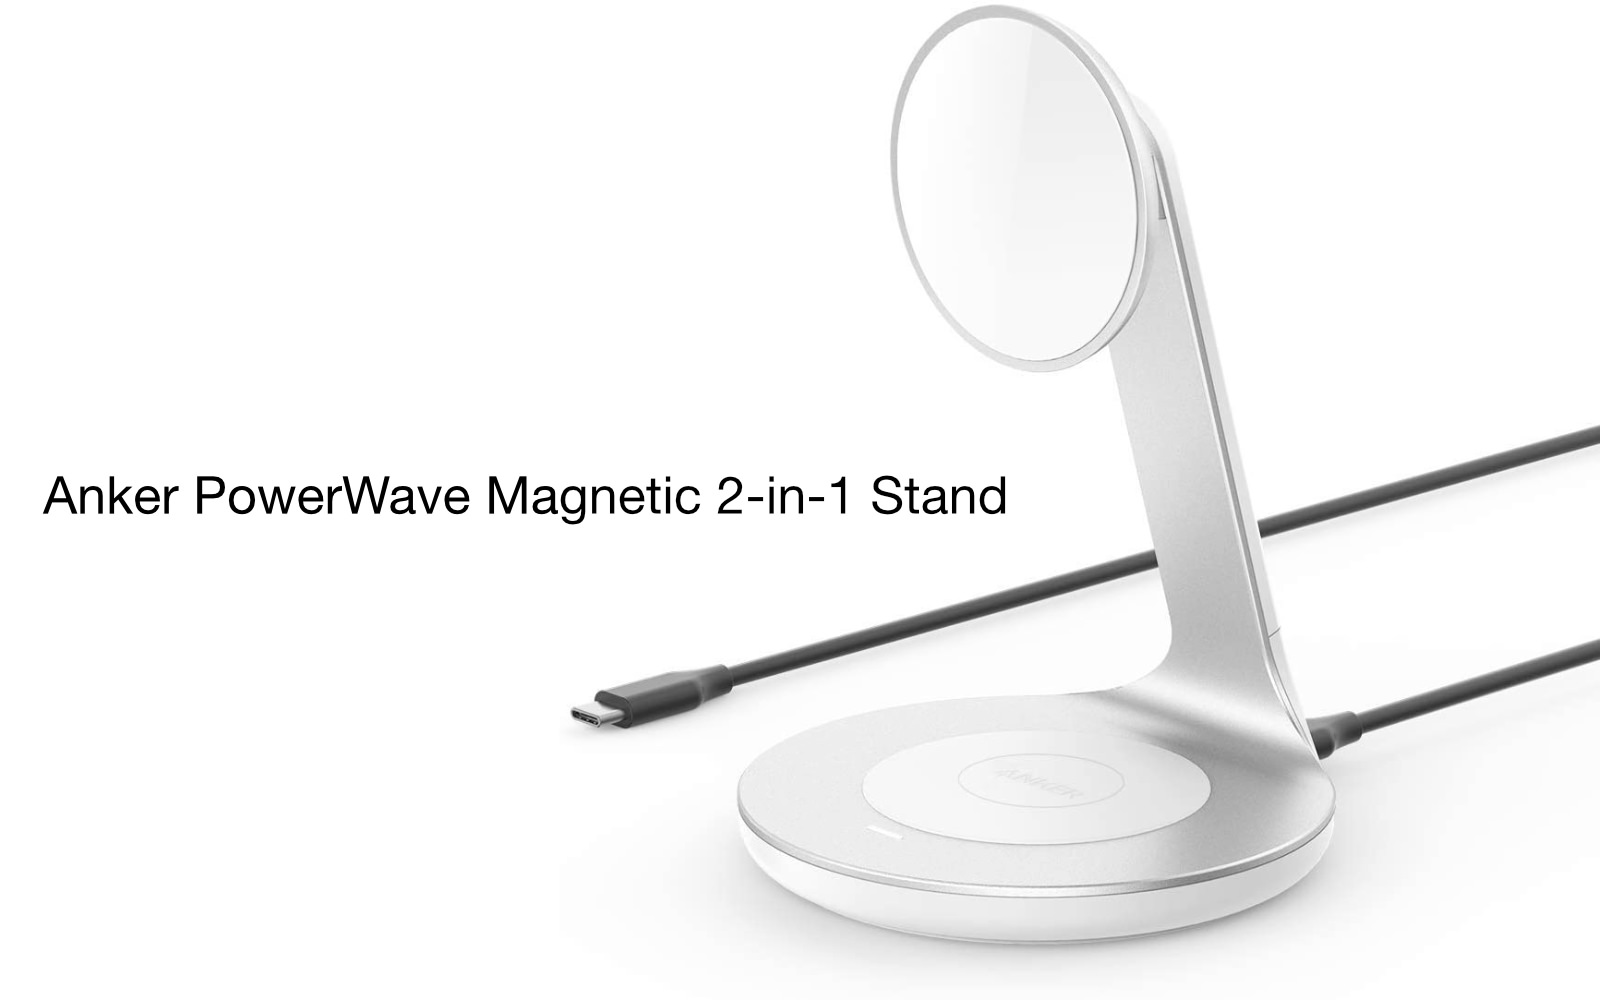 Anker PowerWave Magnetic 2 in 1 stand